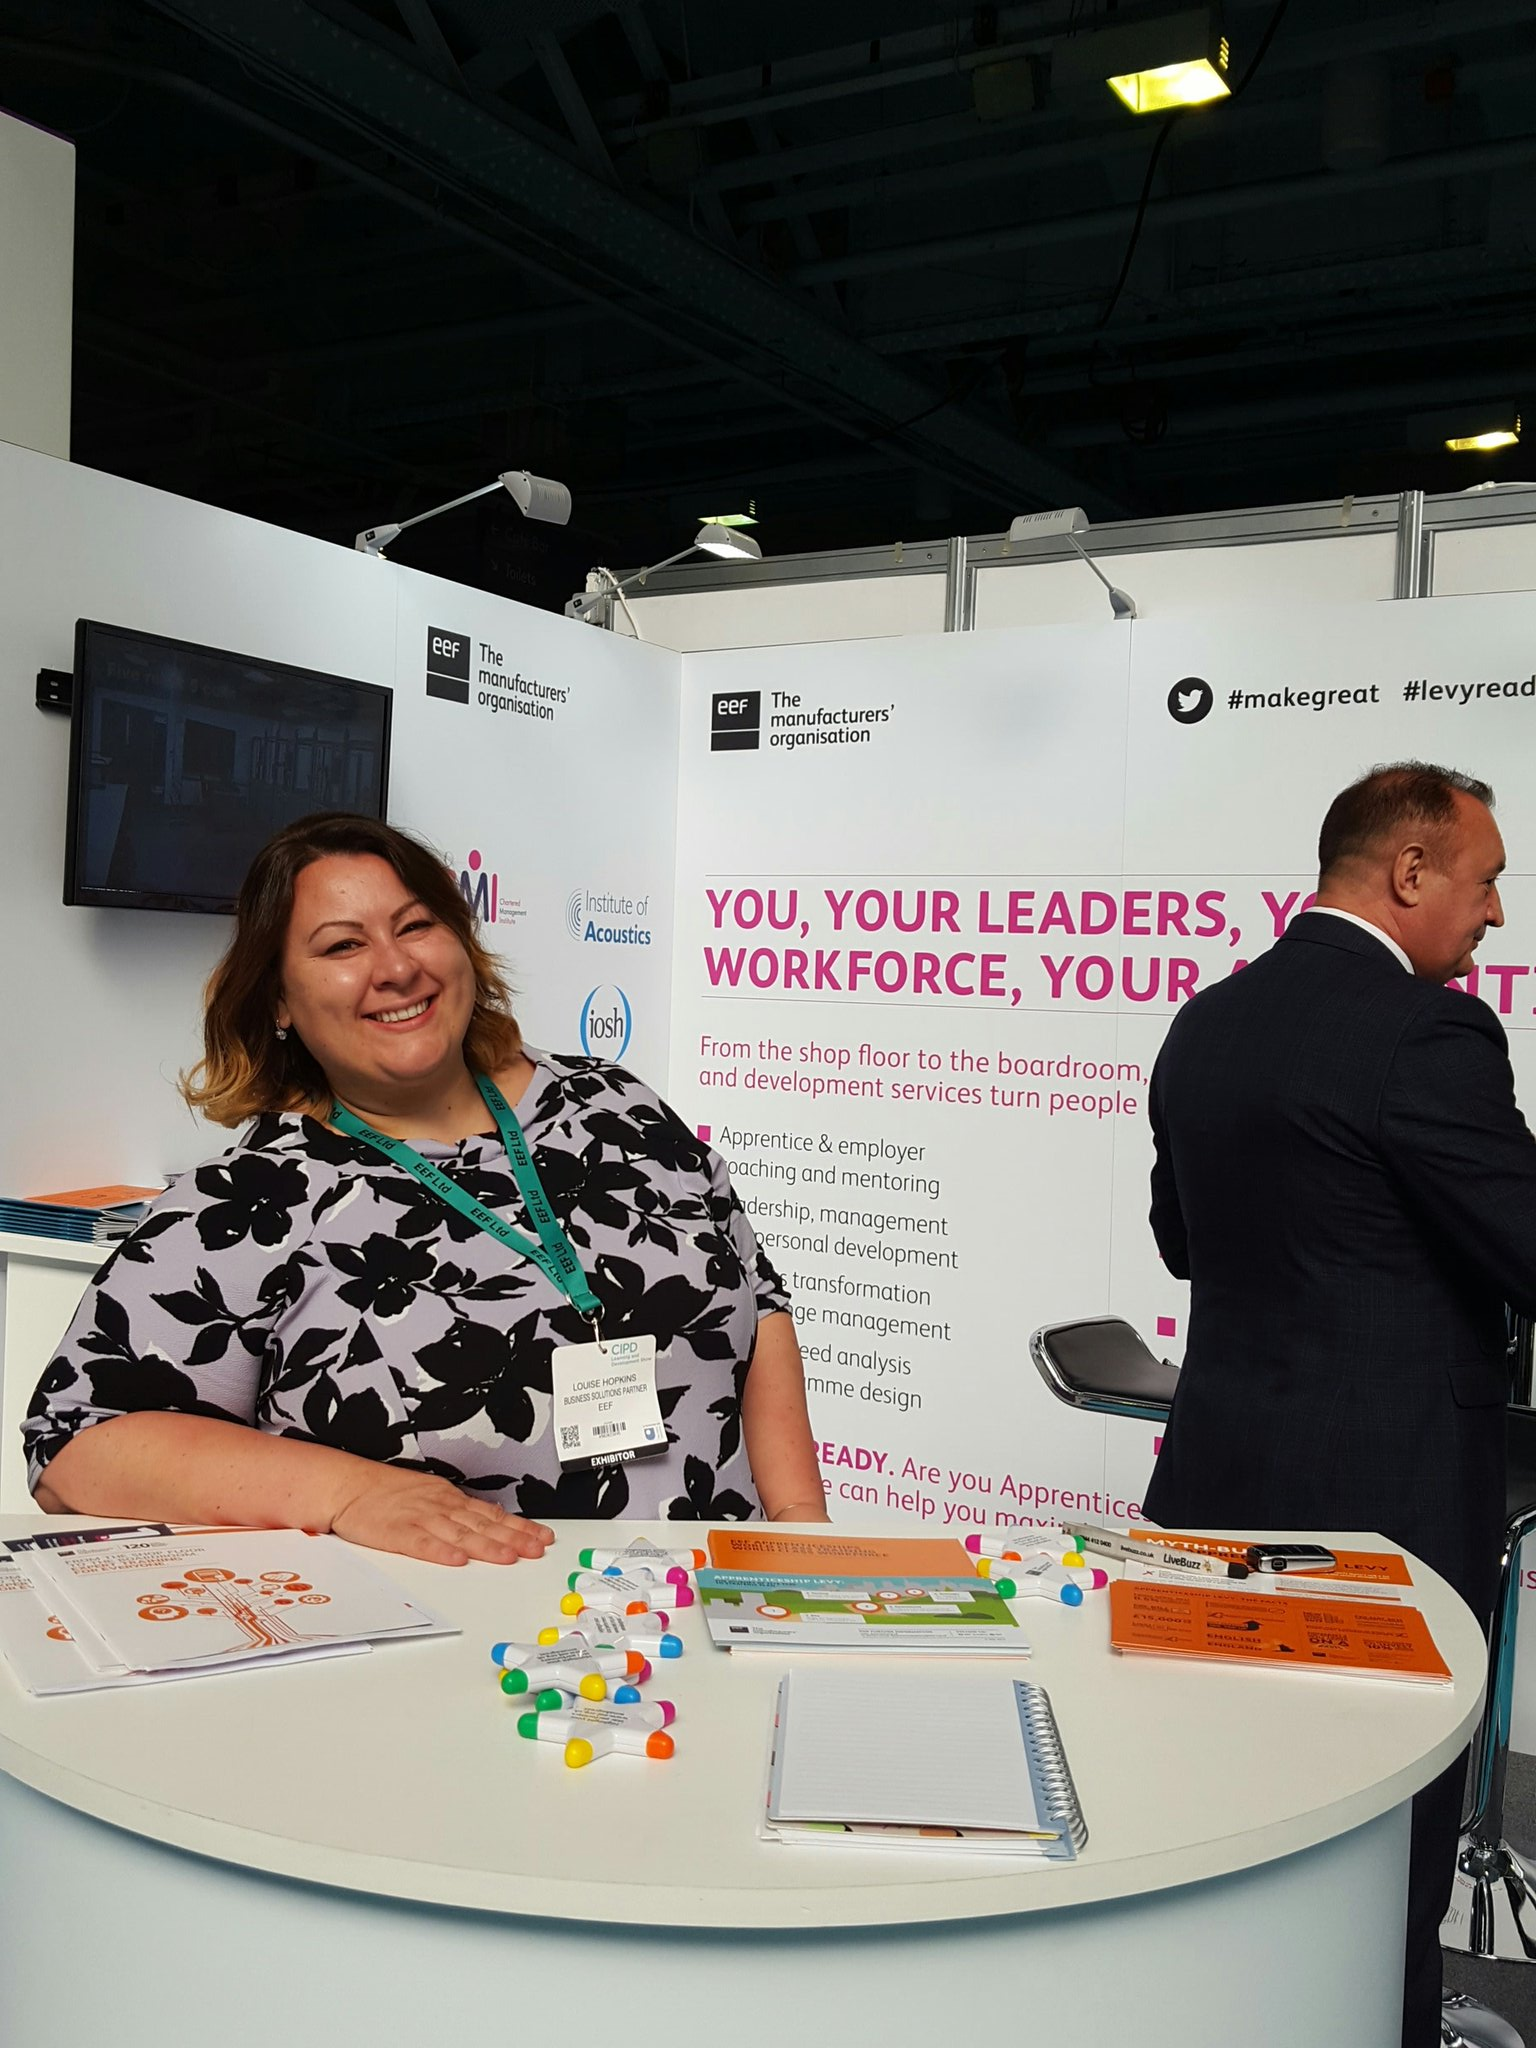 Visit stand 370 @EEF_Insights learn about the apprenticeship levy discounts on training available #makegreat #cipdldshow https://t.co/o6b4cC4TS6